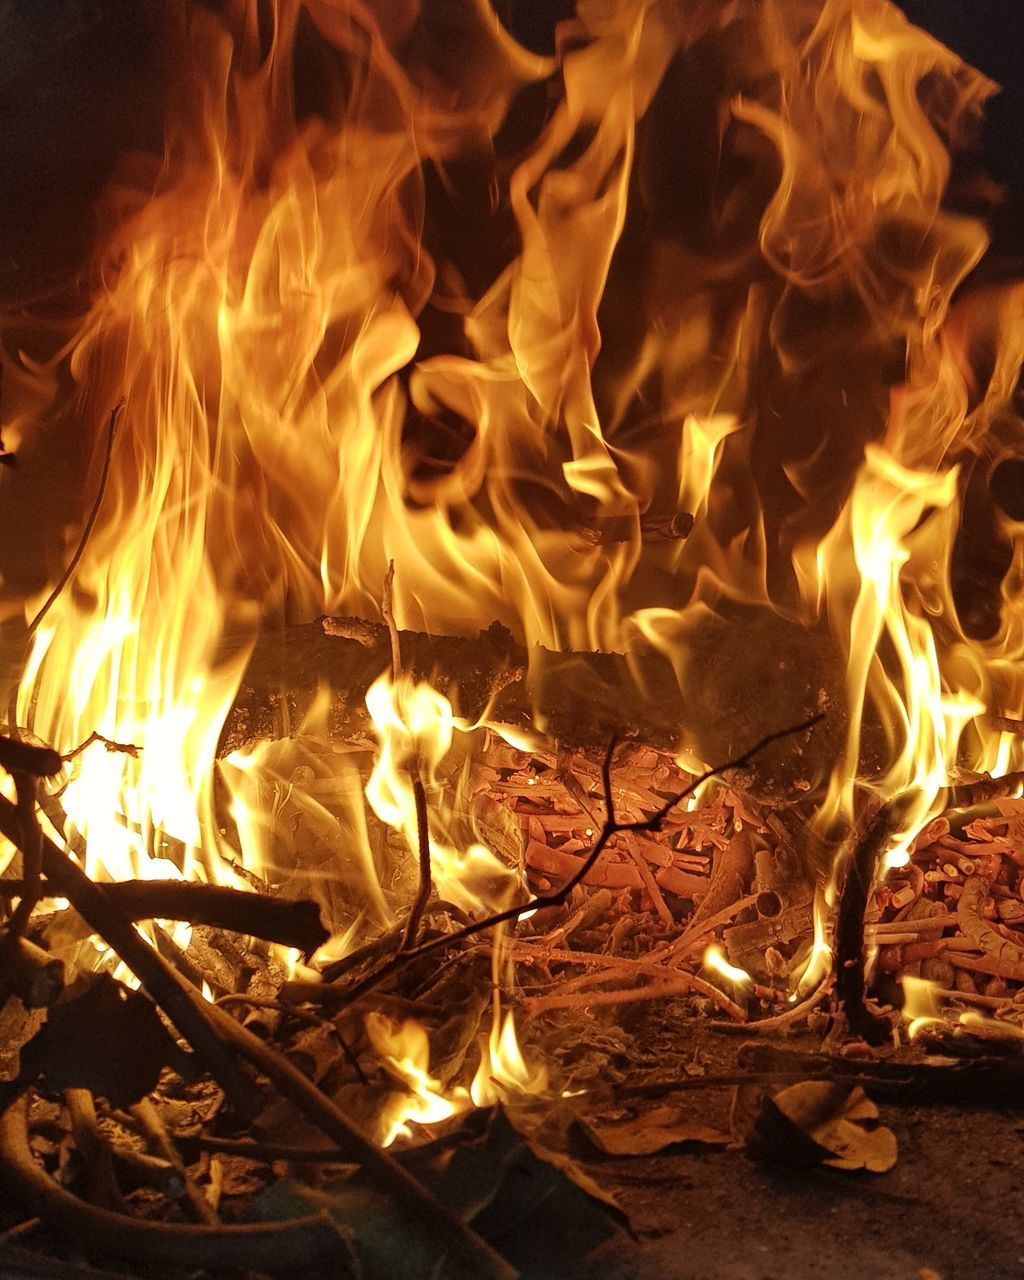 burning, flame, fire, fire - natural phenomenon, heat - temperature, glowing, nature, no people, night, wood - material, wood, motion, log, orange color, firewood, close-up, illuminated, fireplace, environment, bonfire, campfire